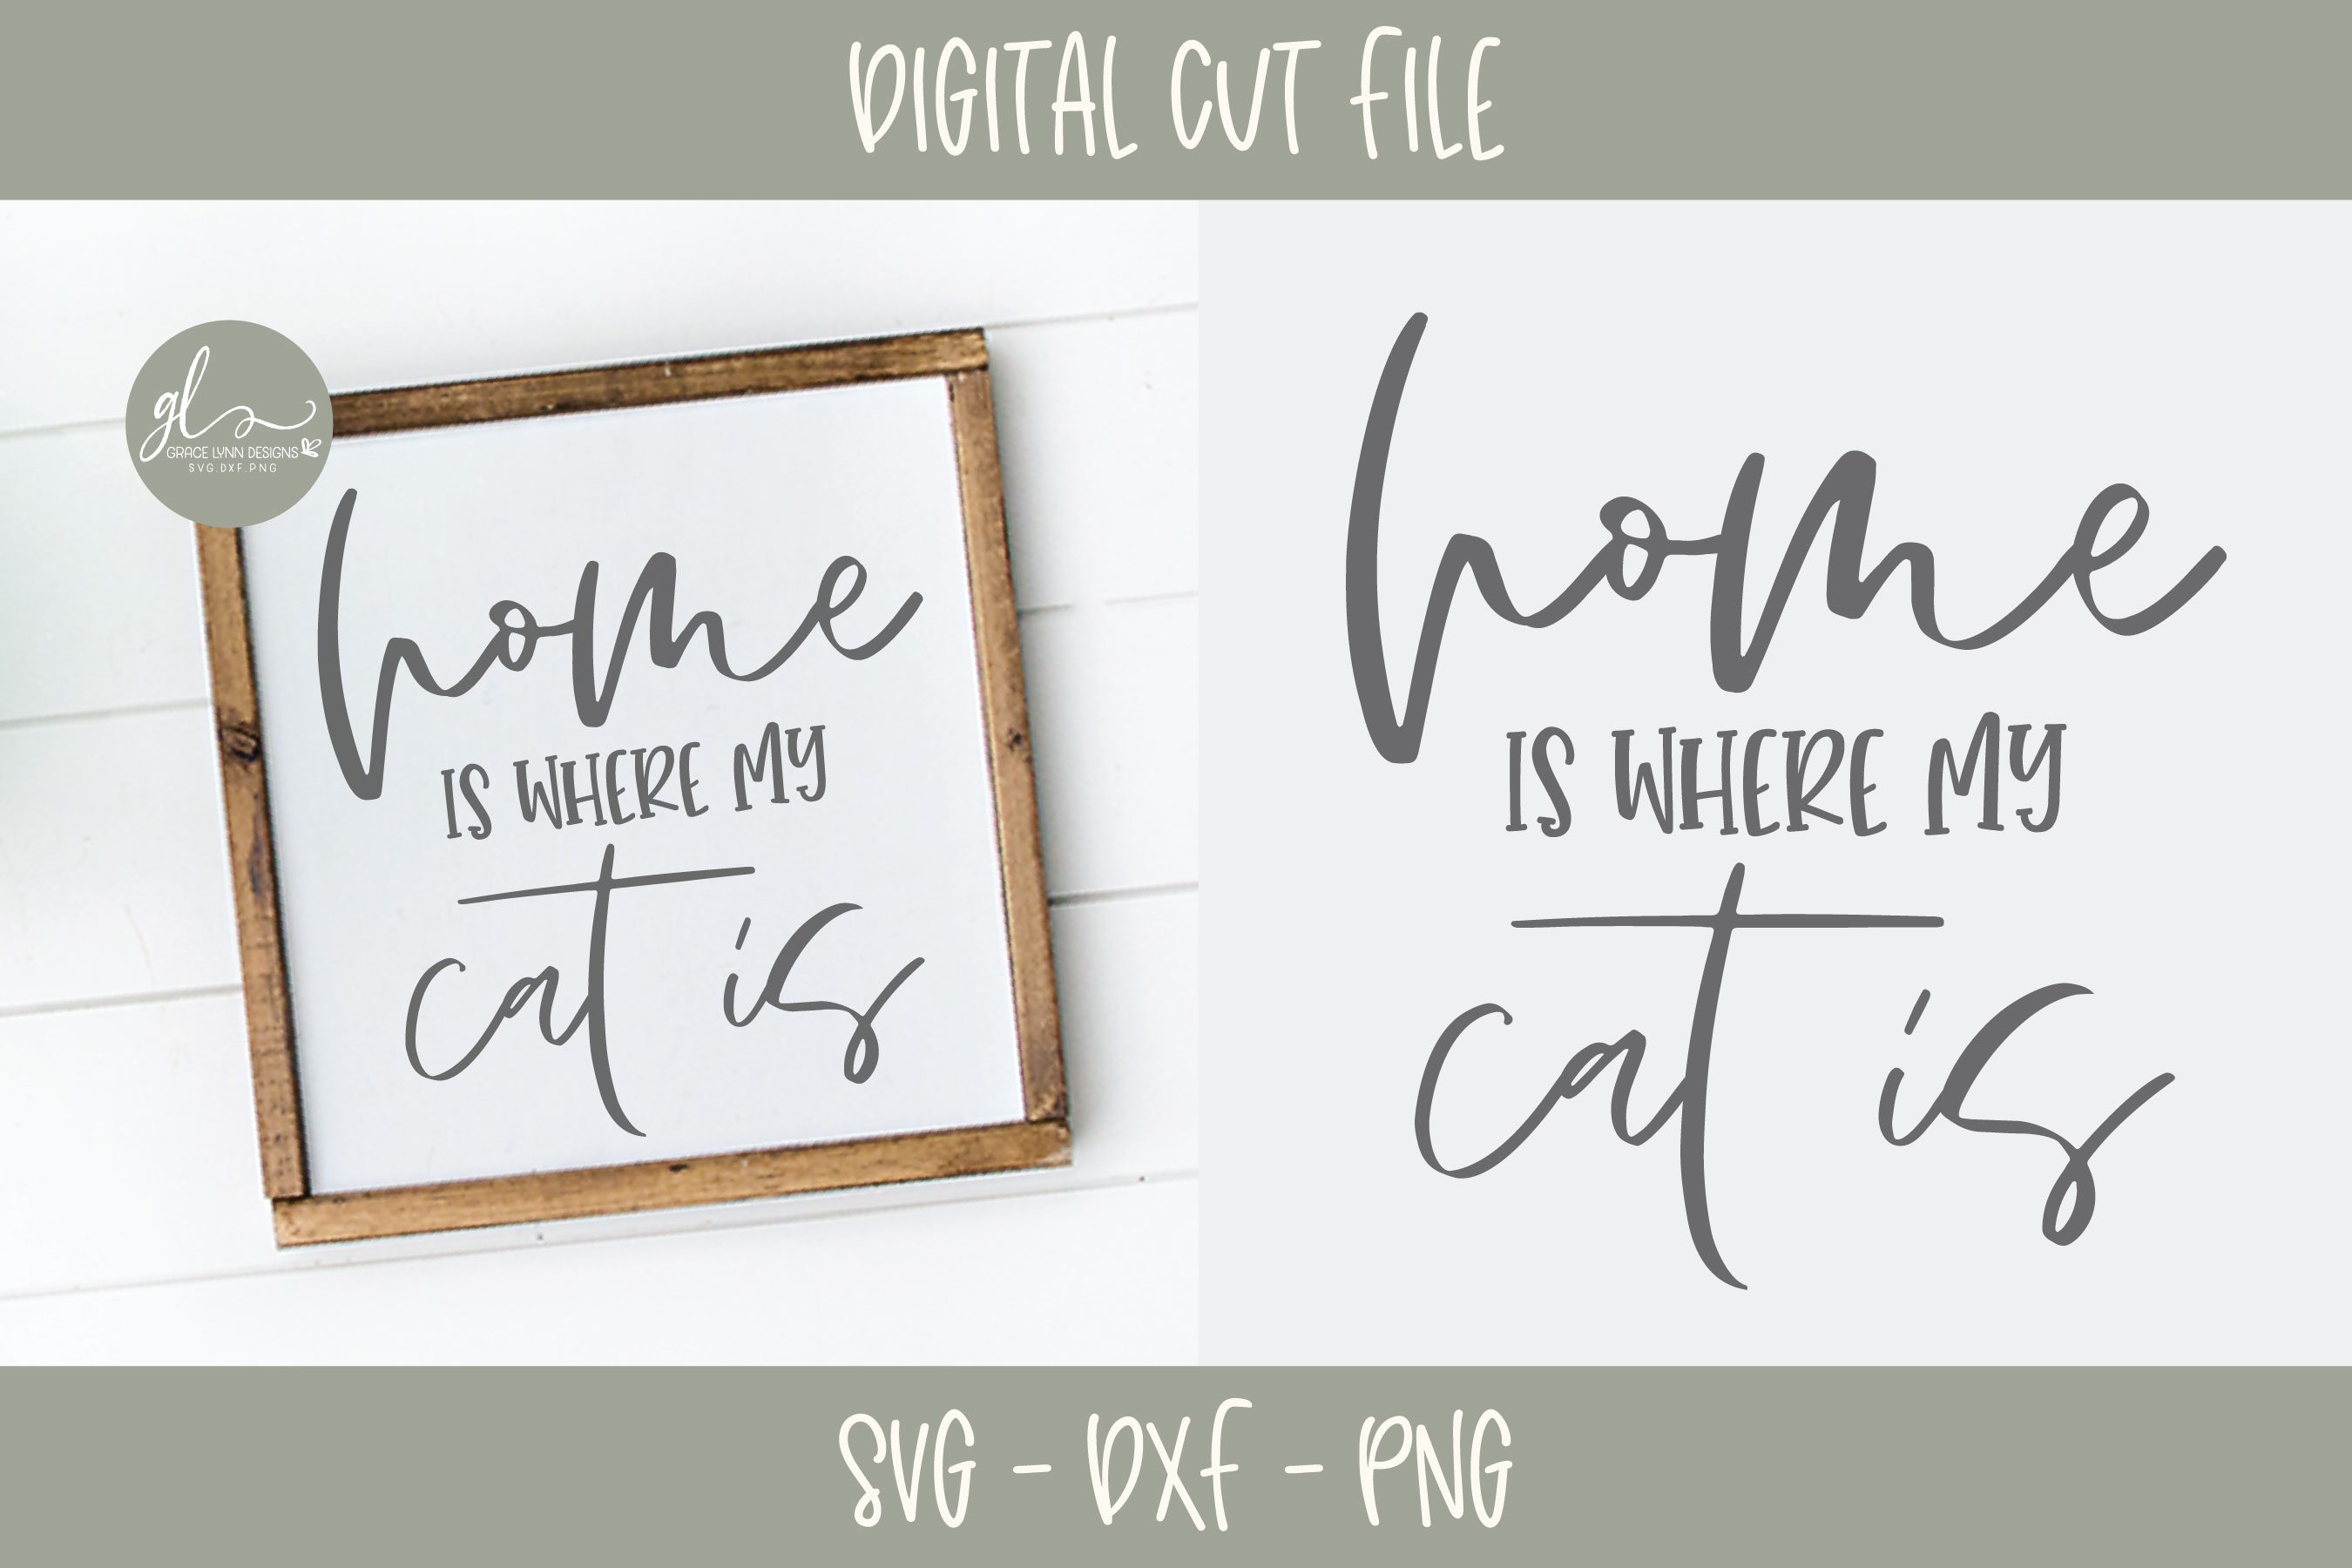 Home Is Where My Cat Is - SVG Cut File example image 1